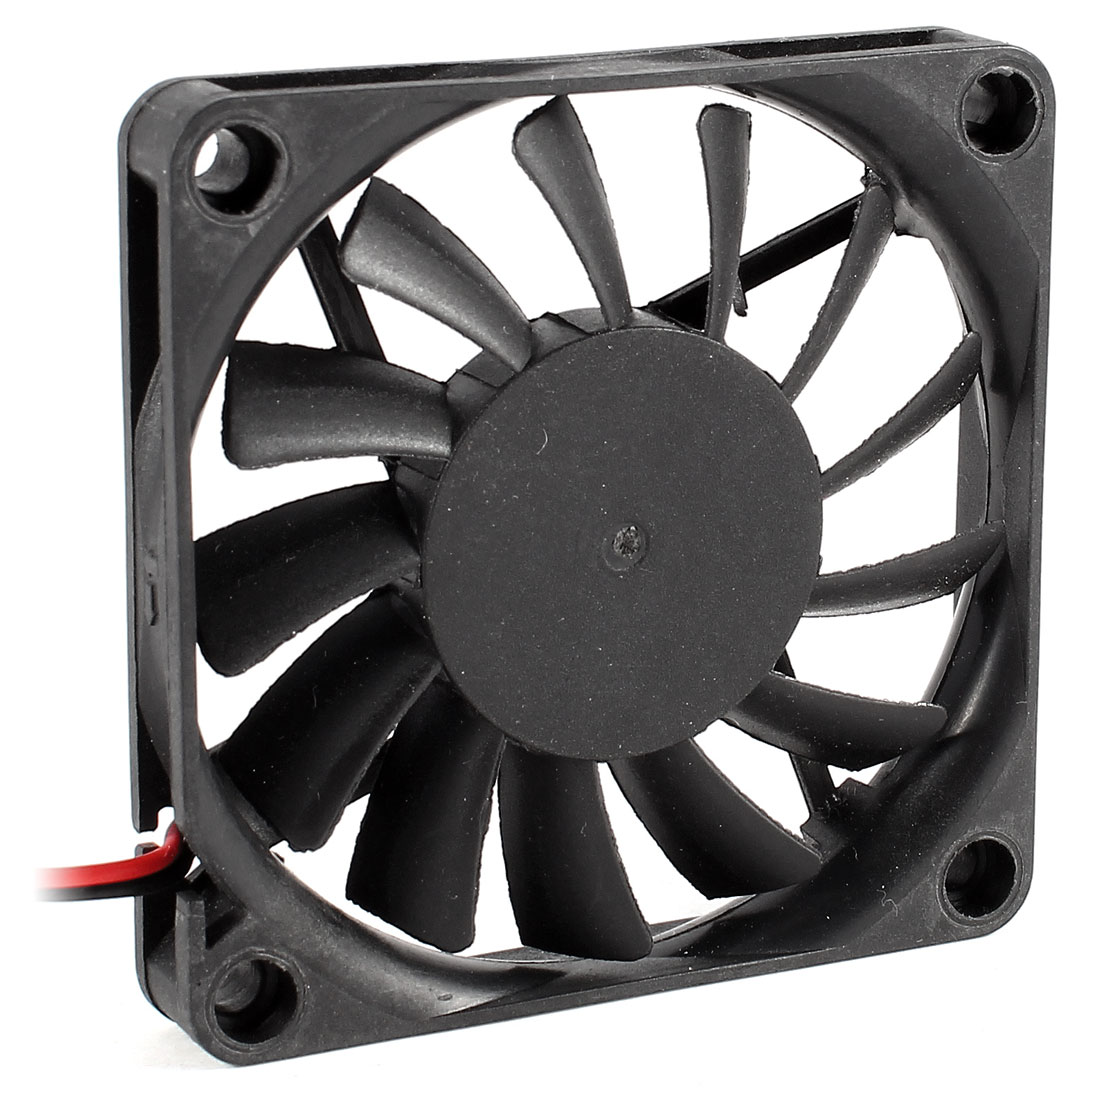 70mm Connector Cooling Fan Black for Computer Cases CPU Coolers